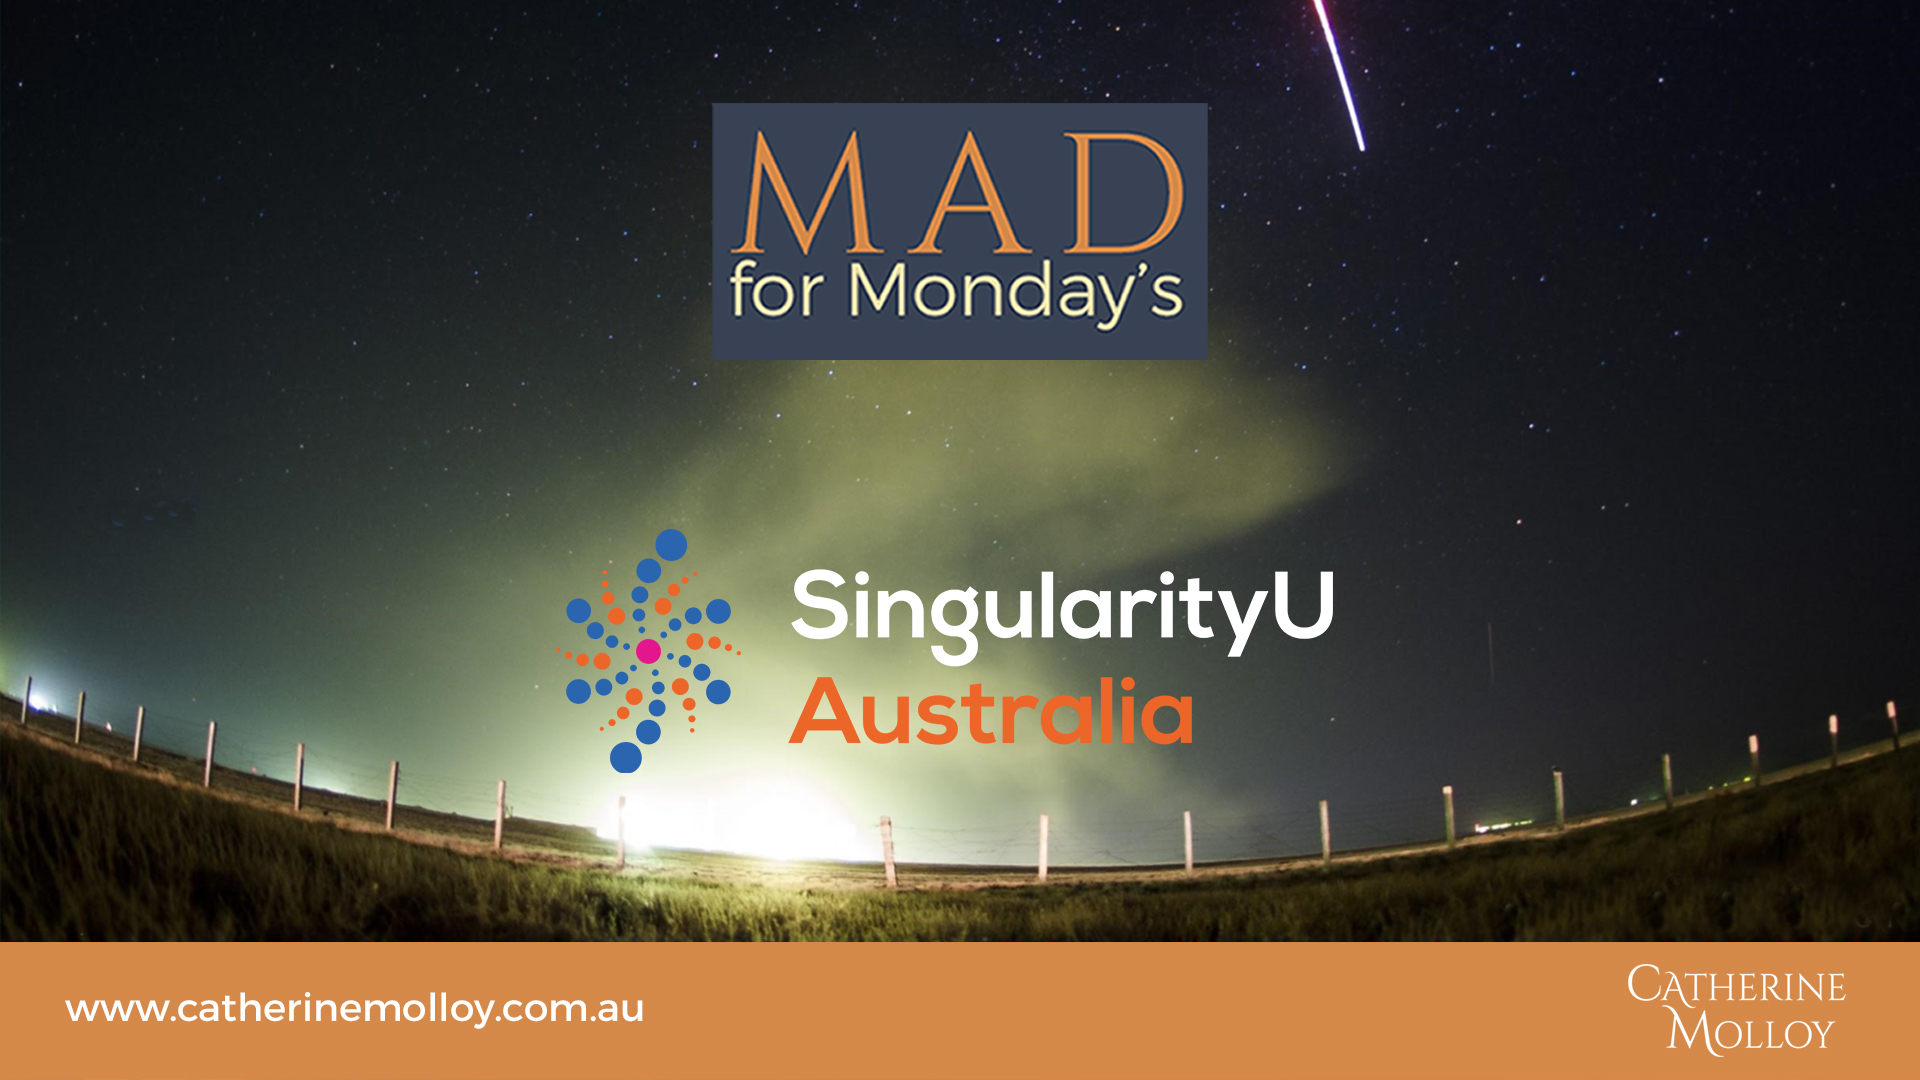 MAD for Monday's – SingularityU Australia